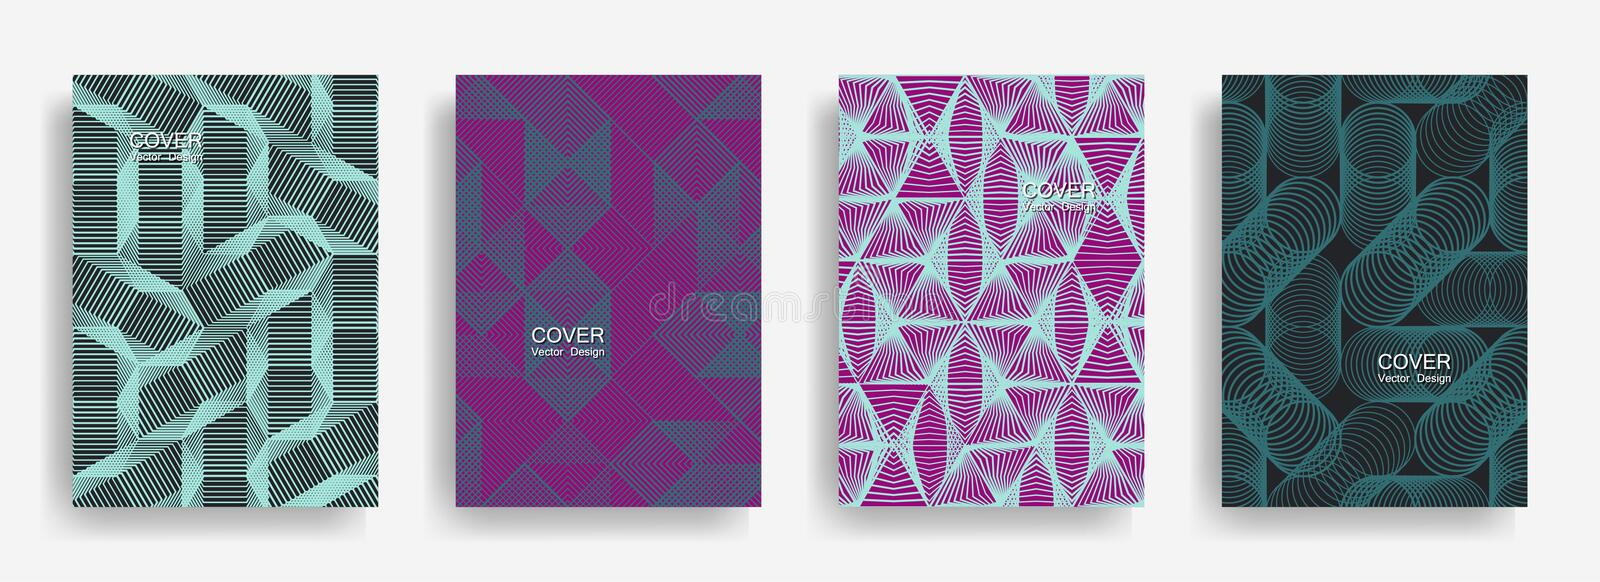 Tech halftone shapes minimal geometric cover templates collection design. royalty free illustration